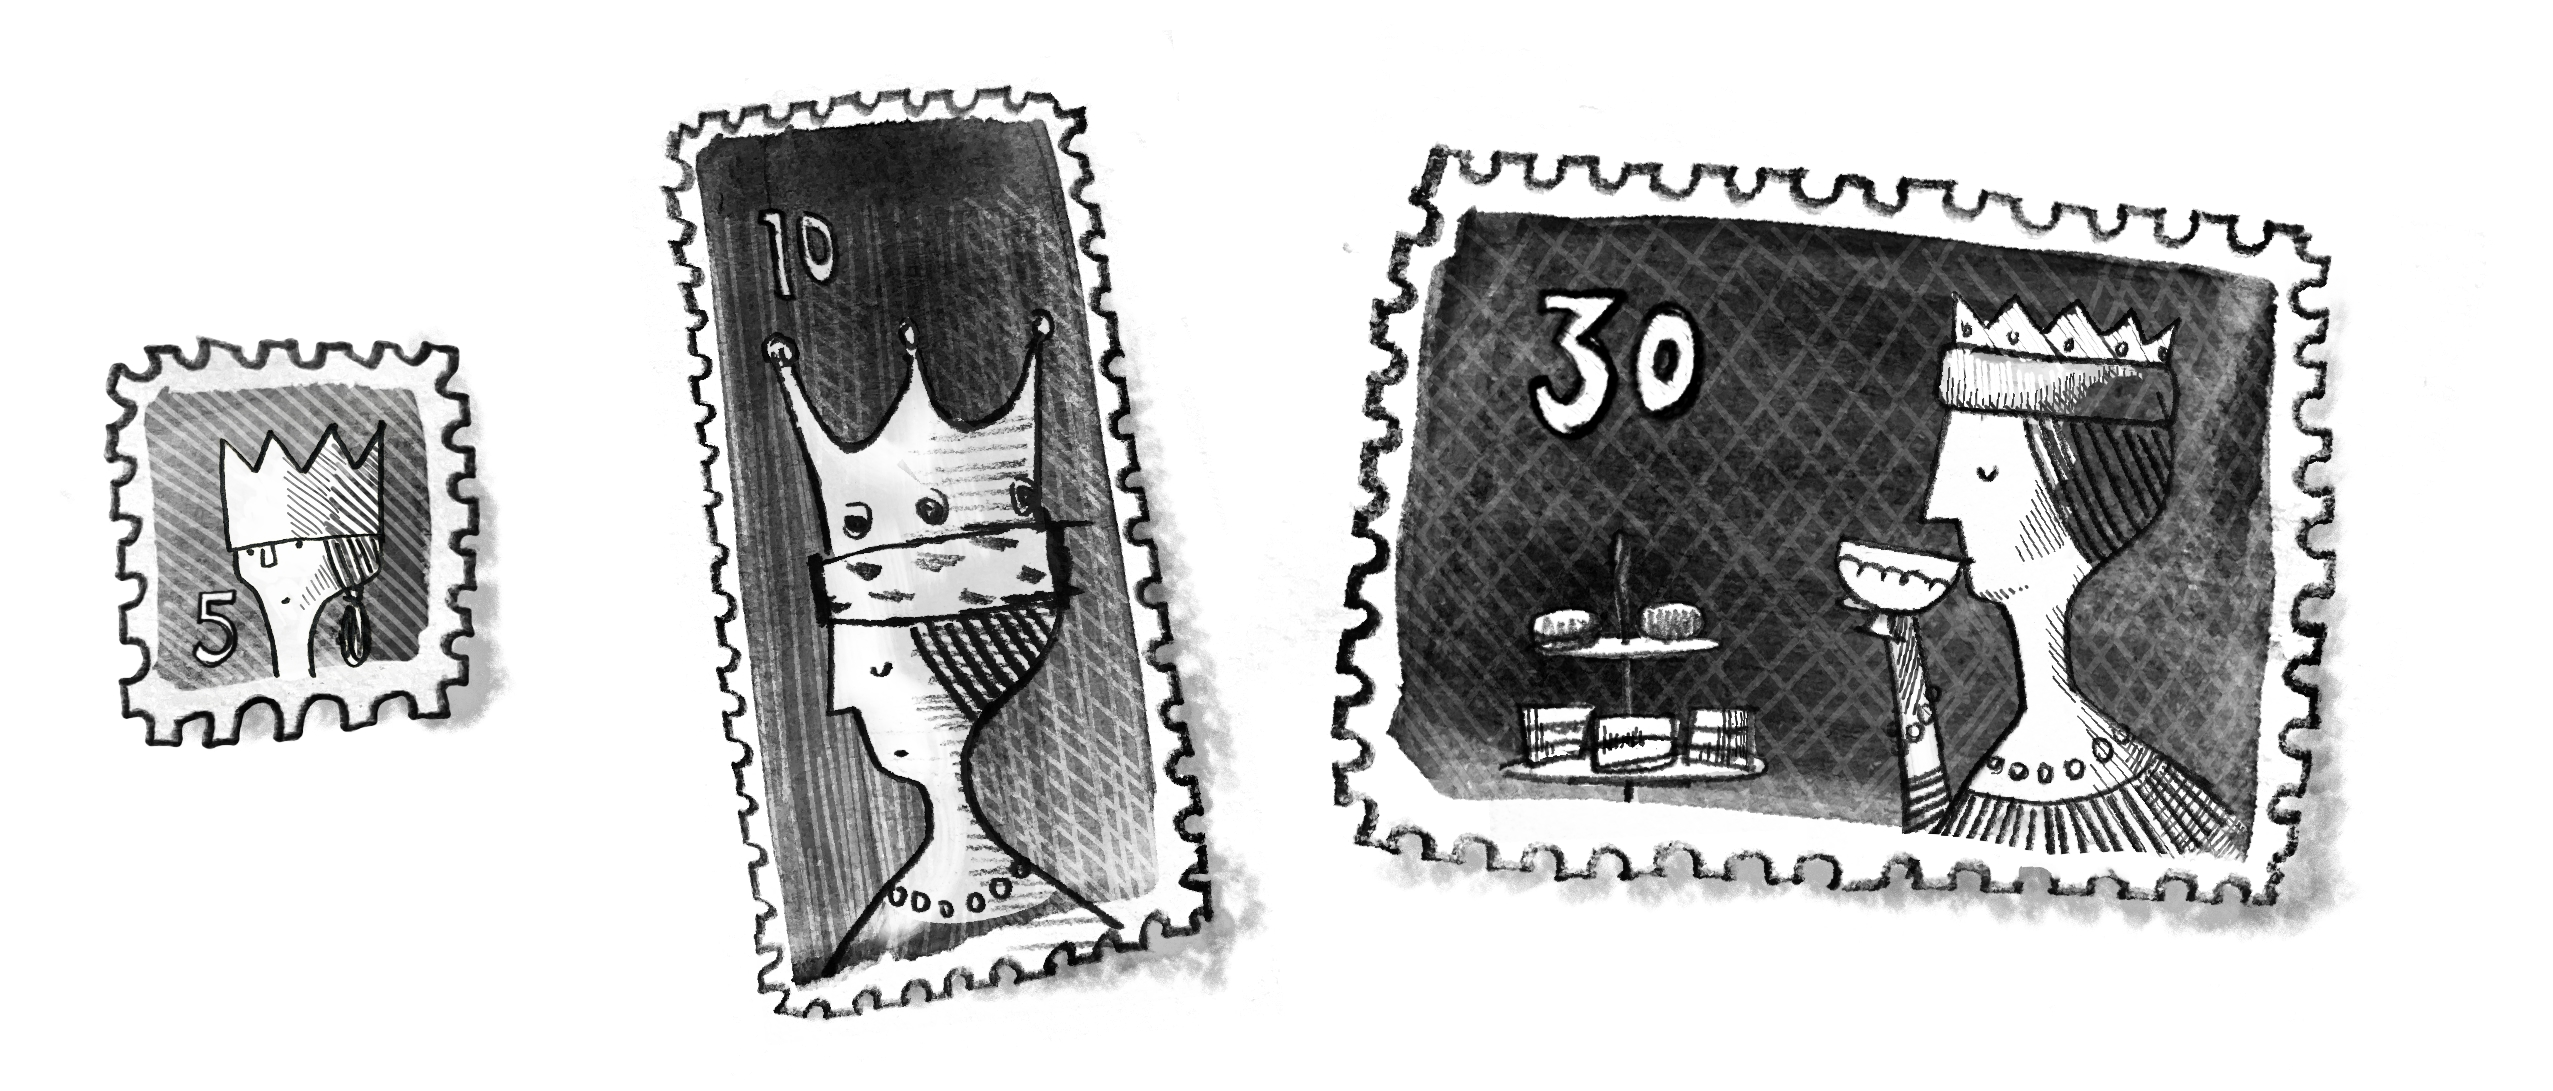 A series of stamps, each showing a queen with additional things in the periphery based on different aspect ratios of the stamps.